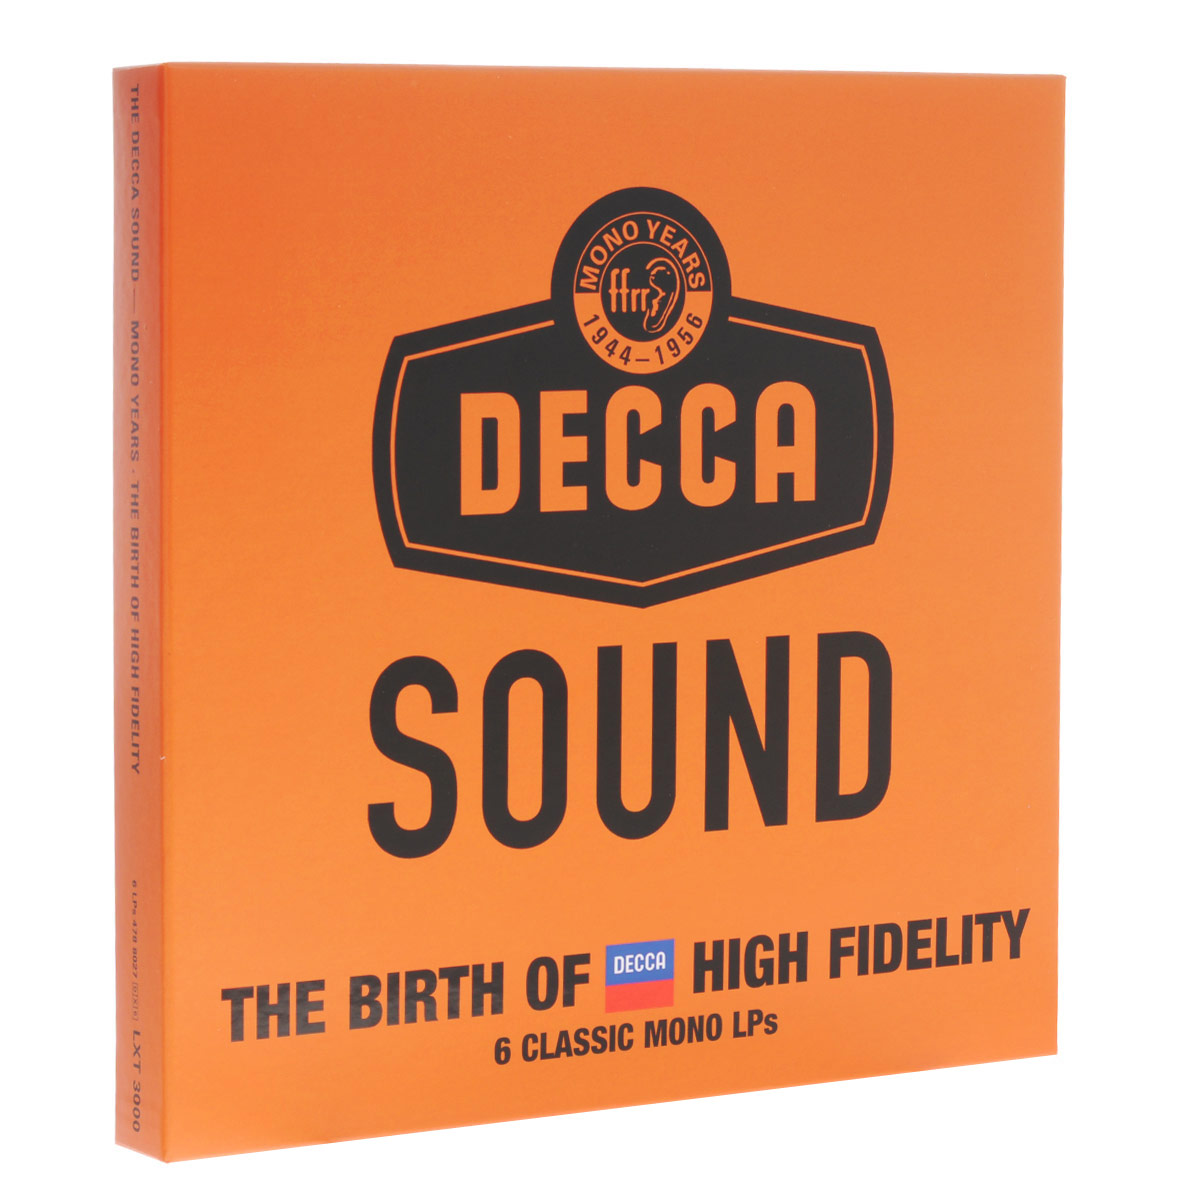 Зара Нельсова,Artur Balsam The Decca Sound - Mono Years. The Birth Of High Fidelity (Limited Edition) (6 LP) the future sound of london the future sound of london teachings from the electronic brain